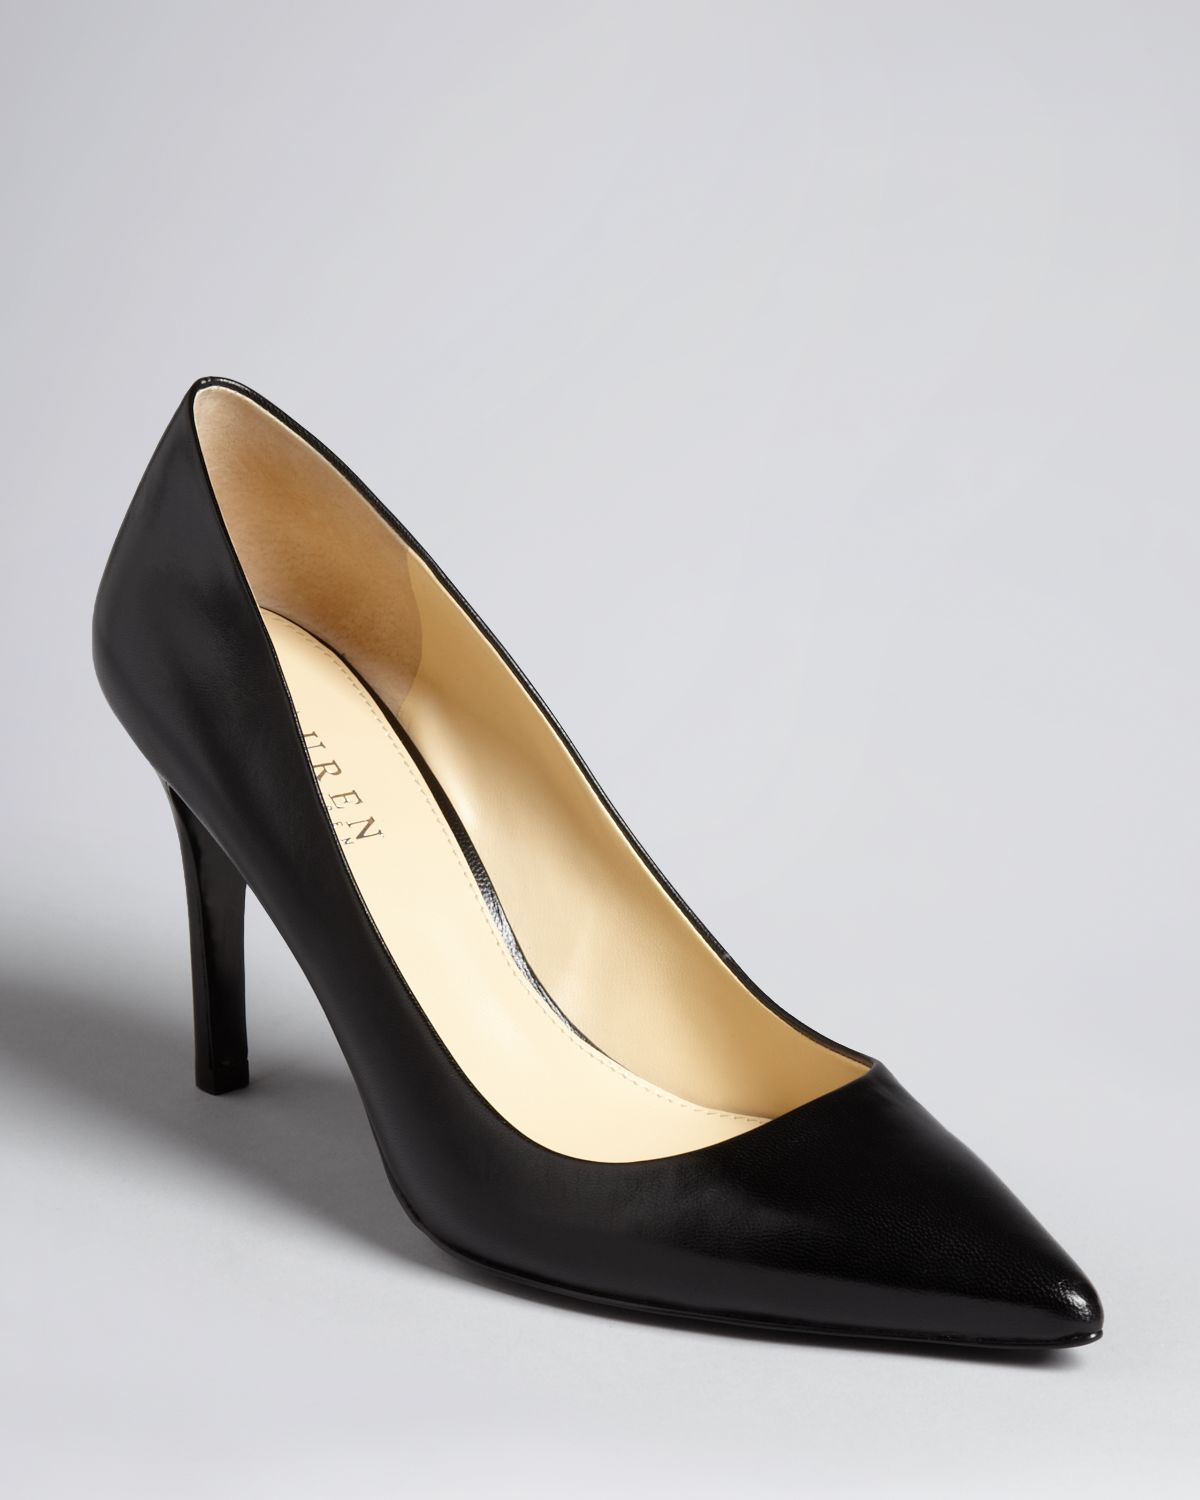 Lauren Ralph Lauren Pointed Toe Pumps - Adena High Heel | Bloomingdale's